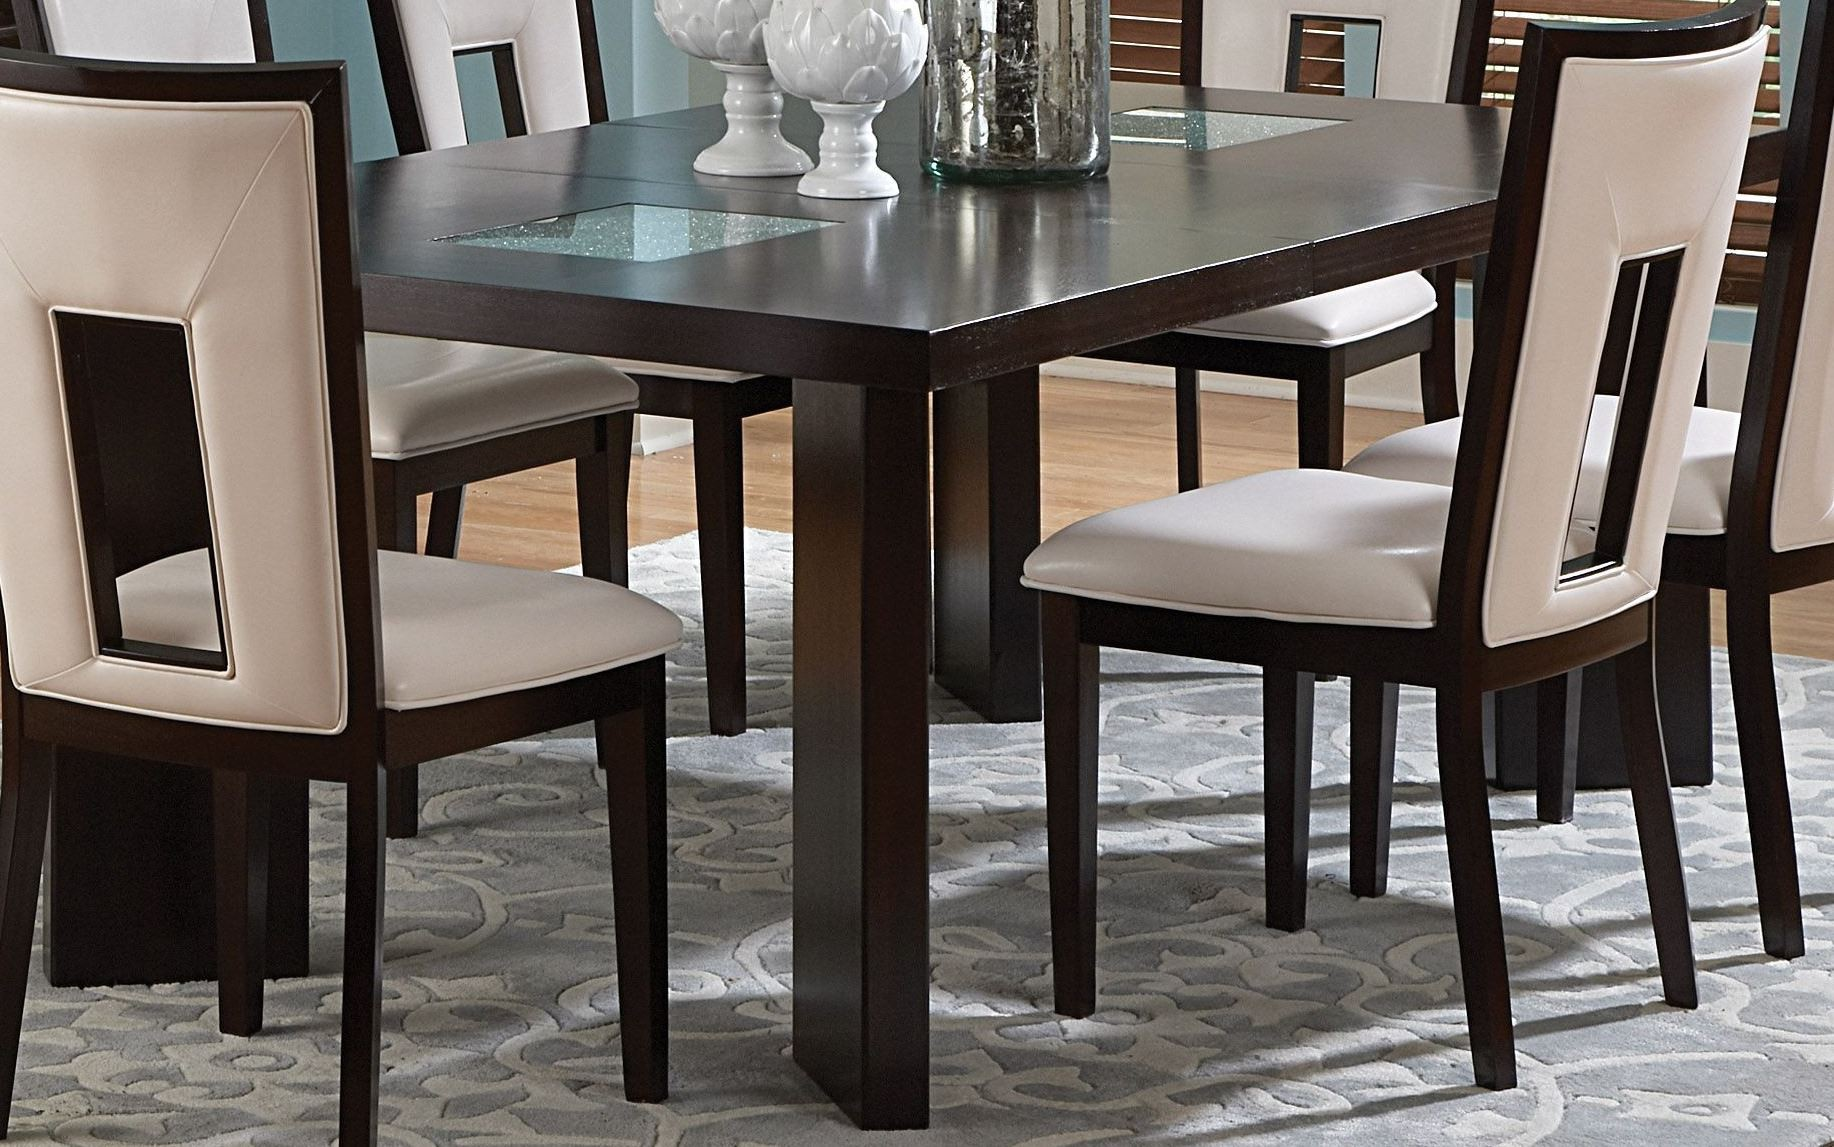 delano espresso cherry extendable rectangular dining table from steve silver de600t coleman. Black Bedroom Furniture Sets. Home Design Ideas